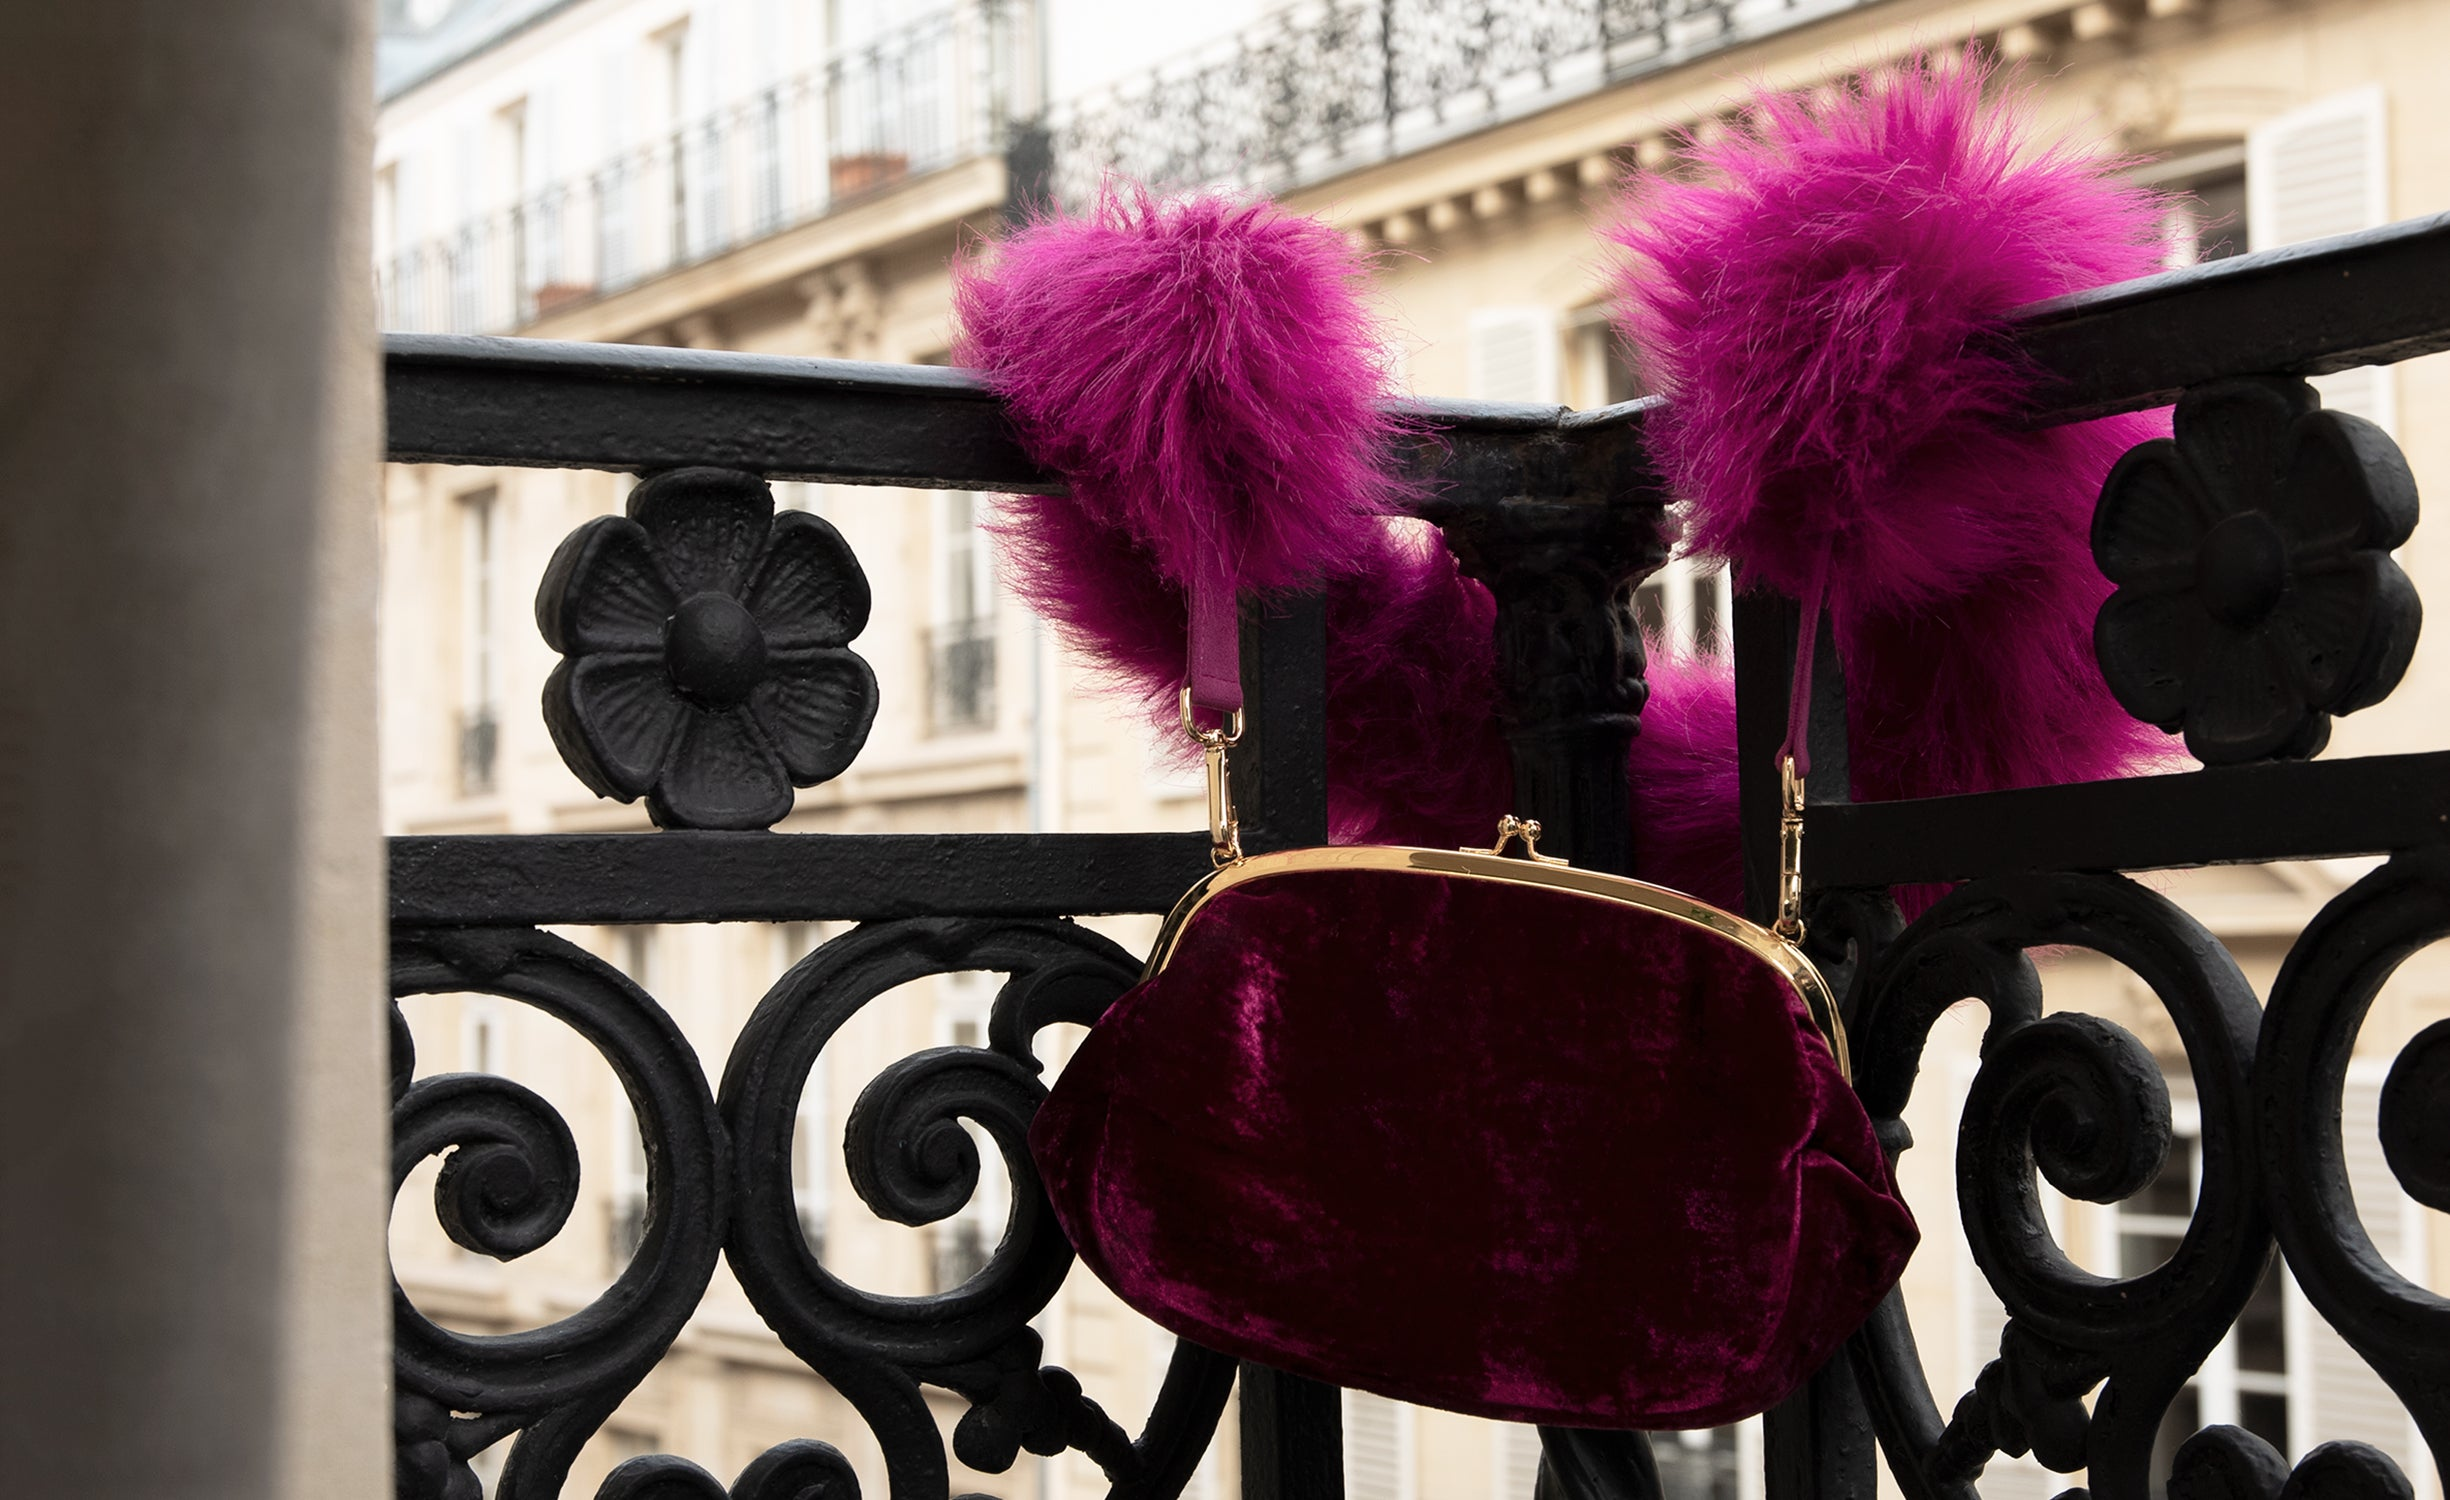 Marei1998's Forget Me Not Velvet Purse In Raspberry Color. Made From Lustrous Velvet And Topped With Gold Plated Brass Clasp For Smooth Closure. The Puffy Silhouette In Bold Raspberry Color Is Accentuated By A Lush Faux Fur Strap, Creating A Contemporary Vintage Look. Front View.